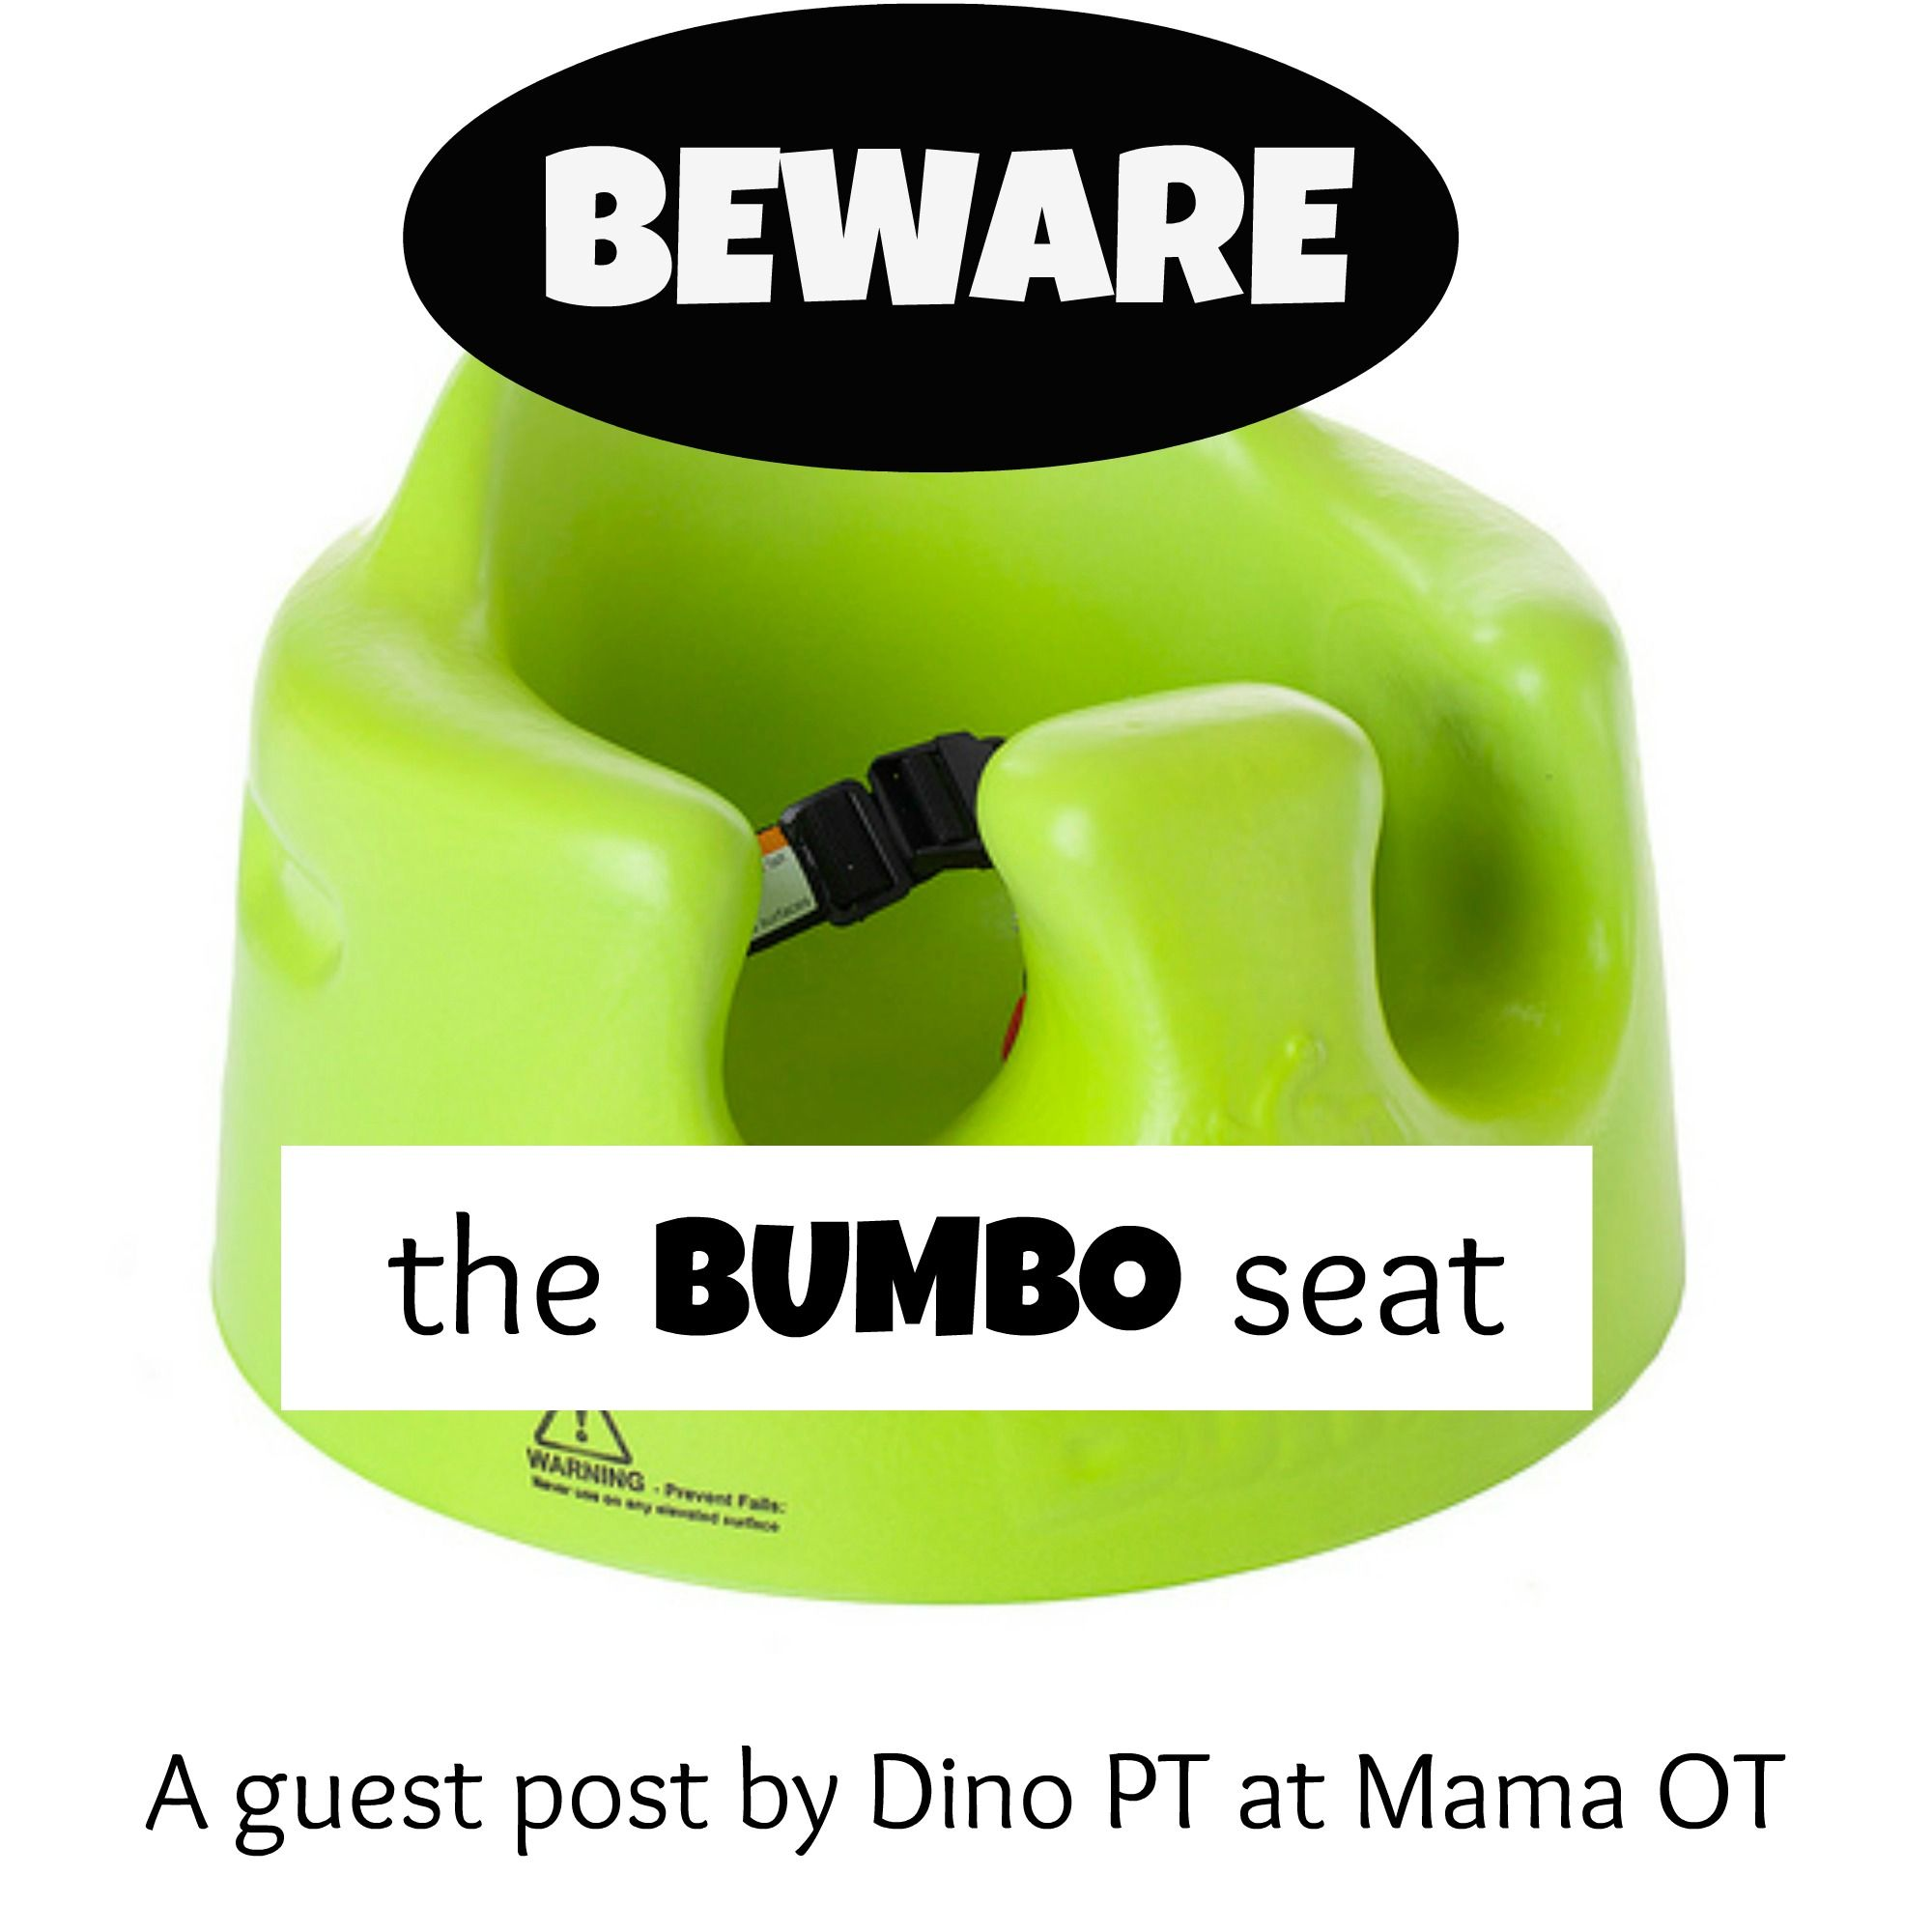 Bright idea 4 physical therapy - A Pediatric Physical Therapist Explains Exactly Why Parents Should Avoid Placing Their Babies In Bumbo Seats